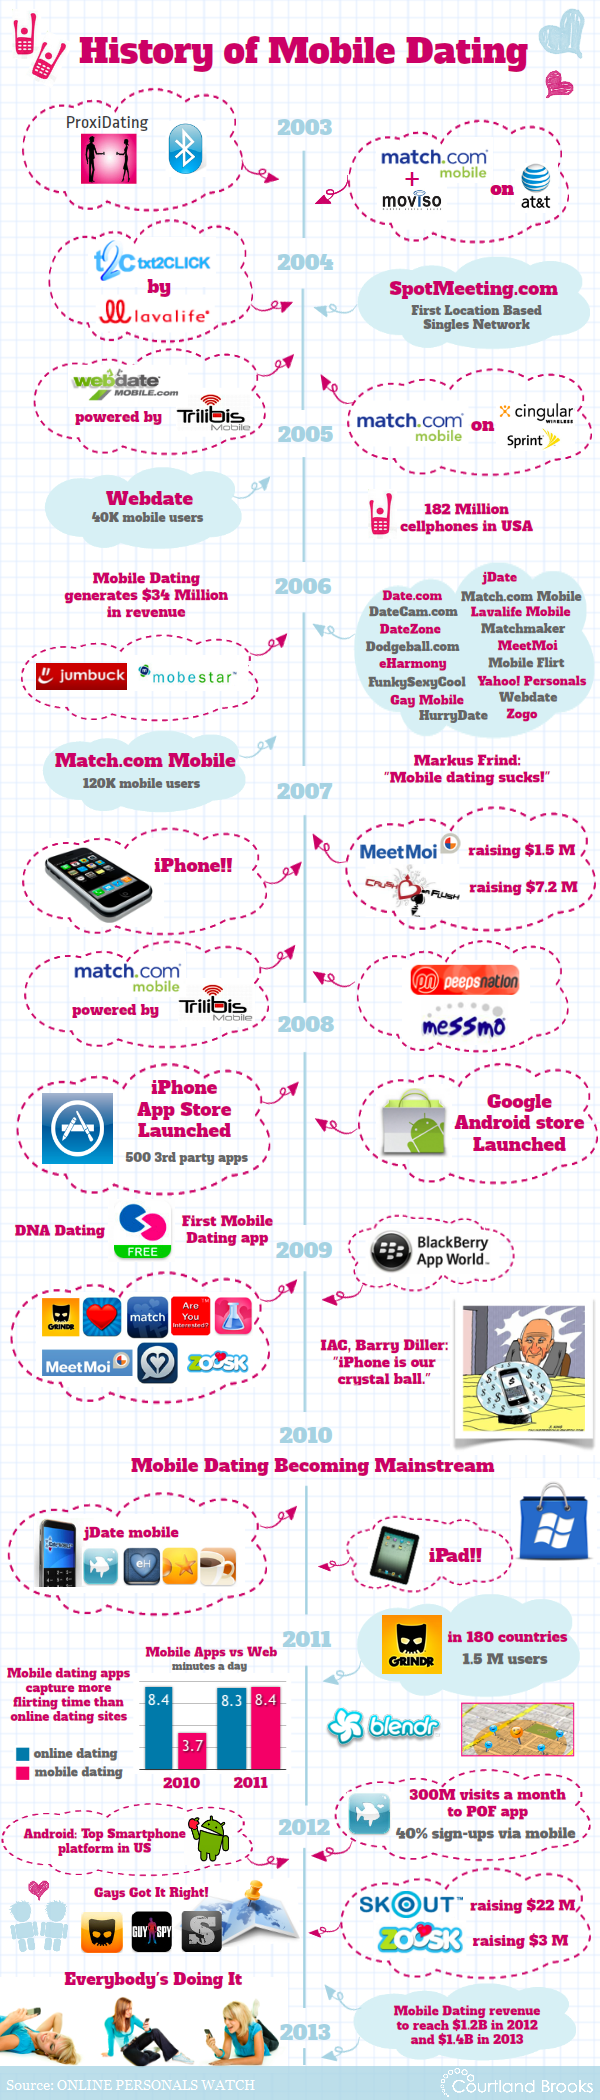 In 2012 mobile dating is now overtaking online dating.